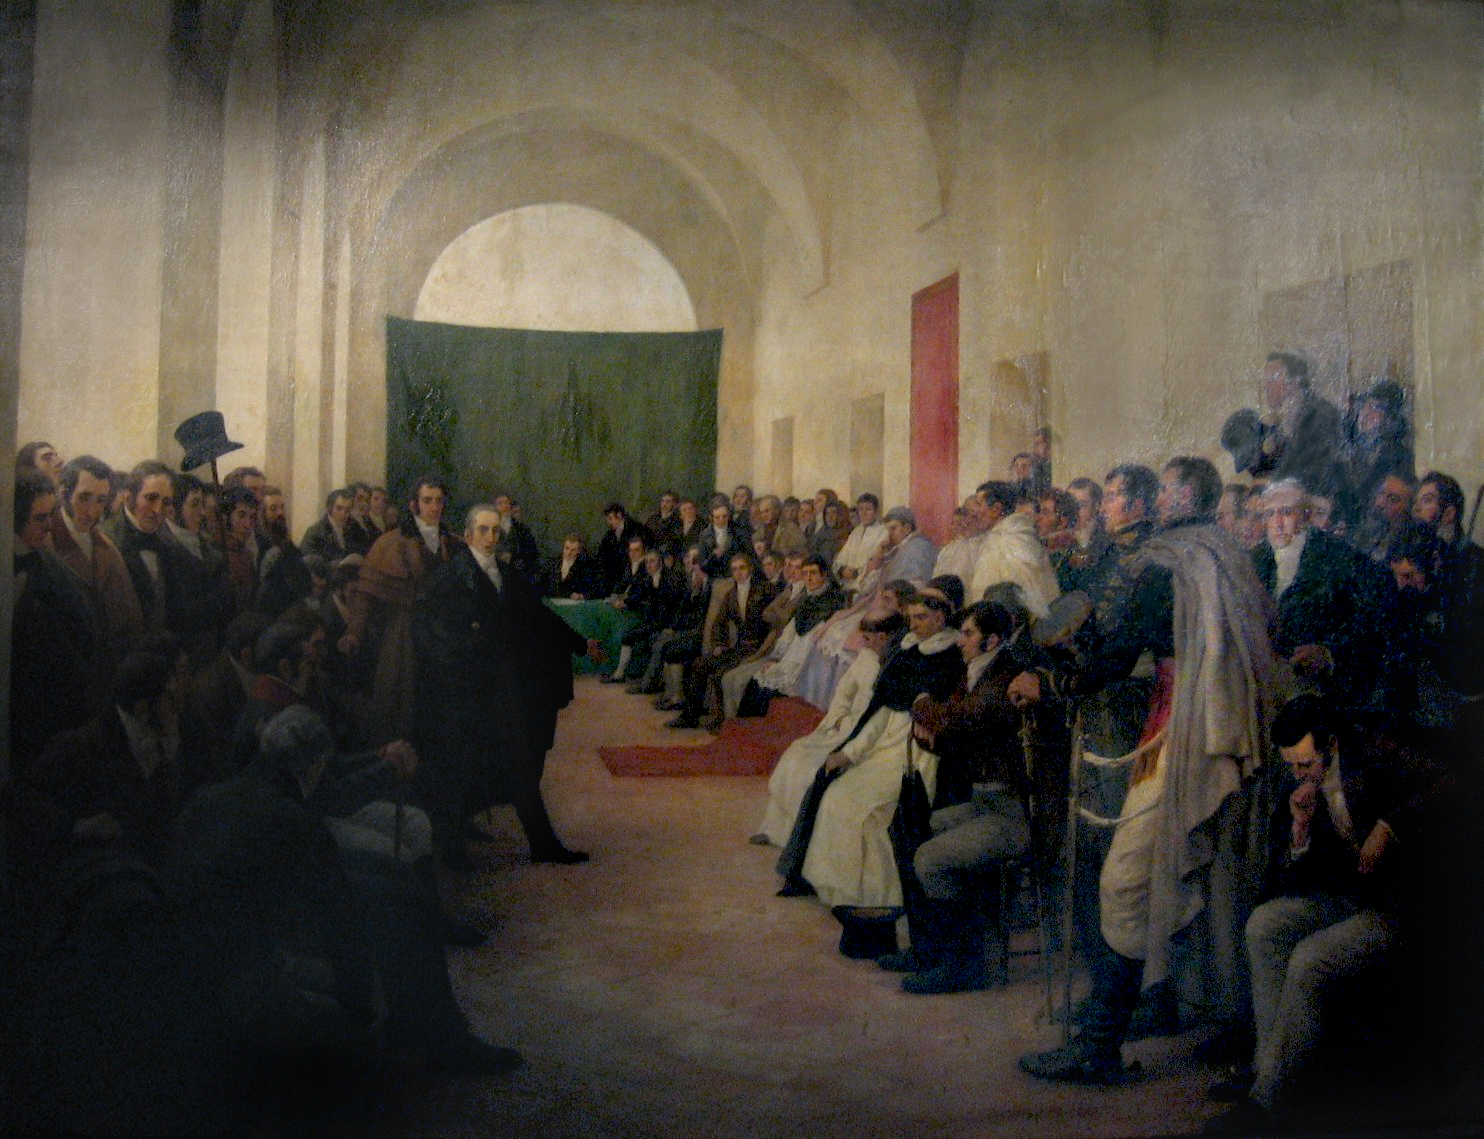 The Open cabildo of May 22 decided to replace the viceroy with a Junta.